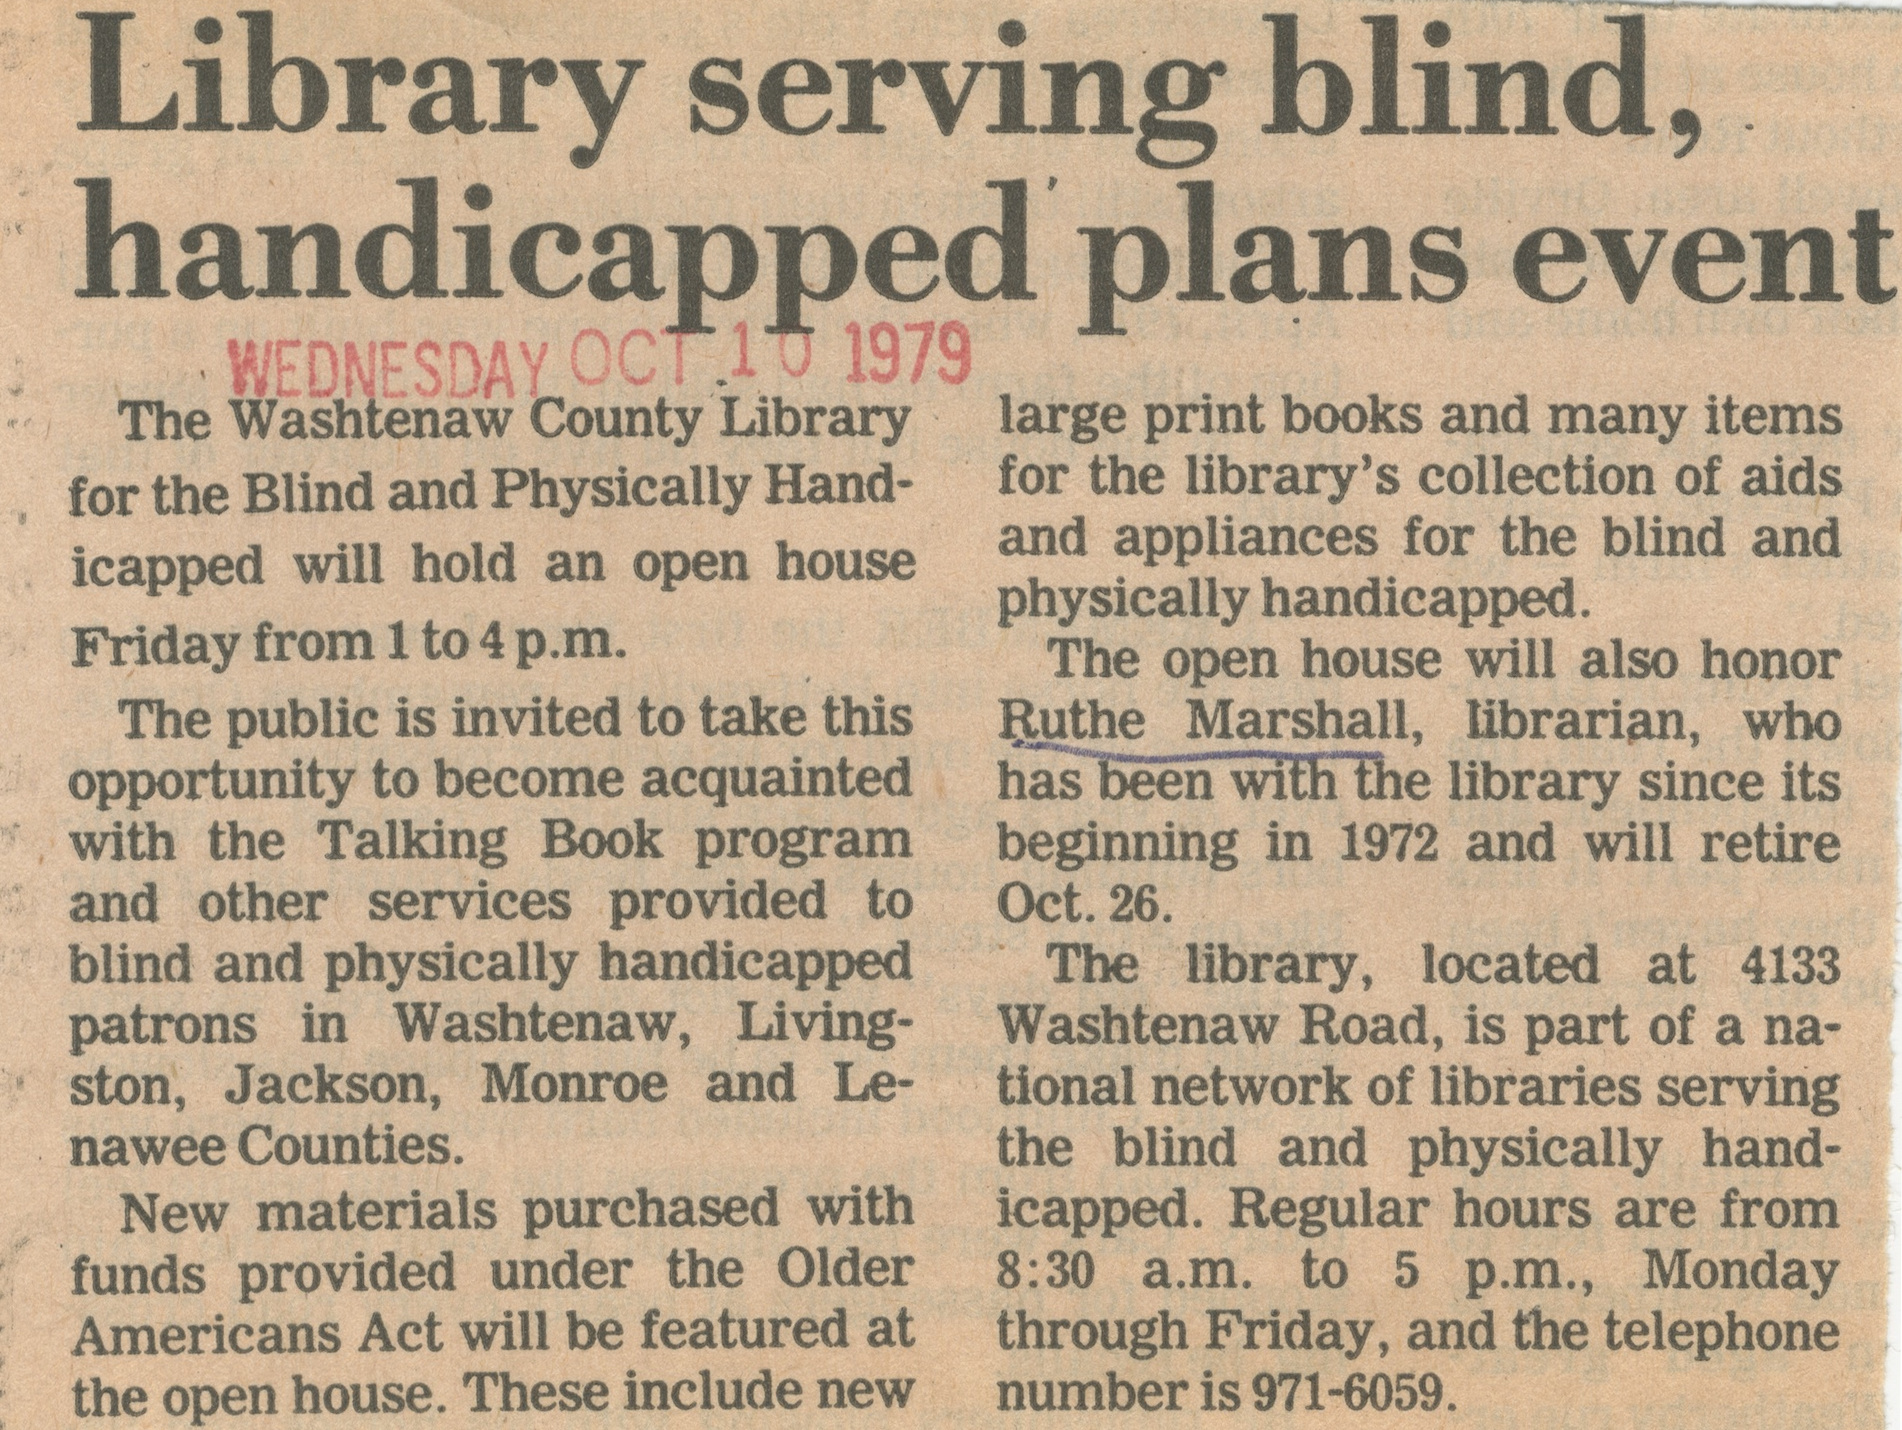 Library Serving Blind, Handicapped Plans Event image